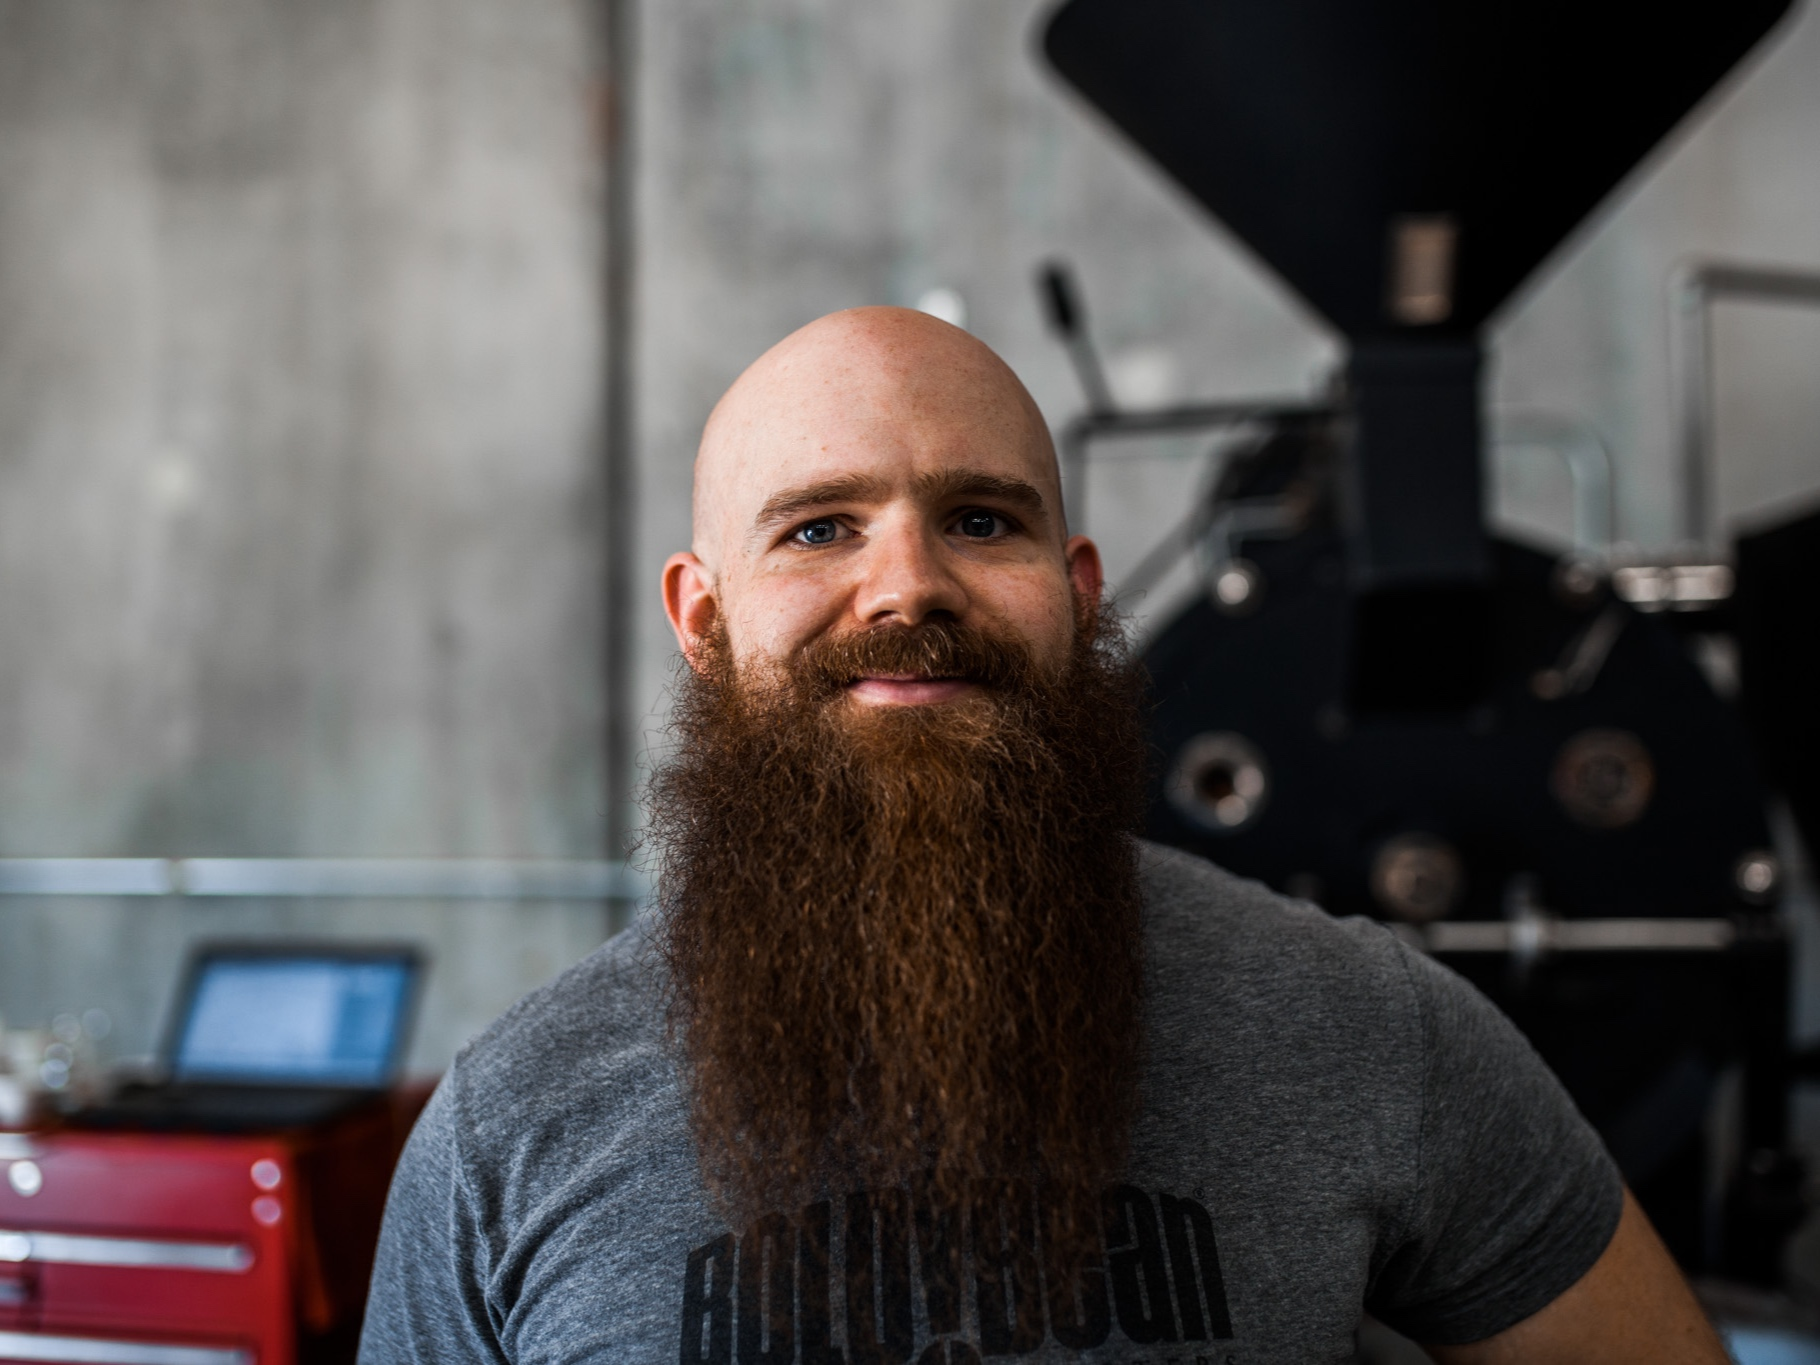 """Chris Rucker, Head Roaster   Coffee roasting plays an important role in our company. For many of us at Bold Bean, most things start as a hobby. The same goes for Chris. He says, """"I started working with coffee, just as a hobby, roasting at my house."""" Chris worked his way up from a Bold Bean customer to now managing our entire roasting operation. """"My job is to make sure everything that comes out of the roaster tastes excellent,"""" Chris Rucker says. """"The farmers give us quality green coffees to work with. It's my job to make sure I pass along quality roasted coffee to the baristas and wholesale accounts to serve our customers."""""""